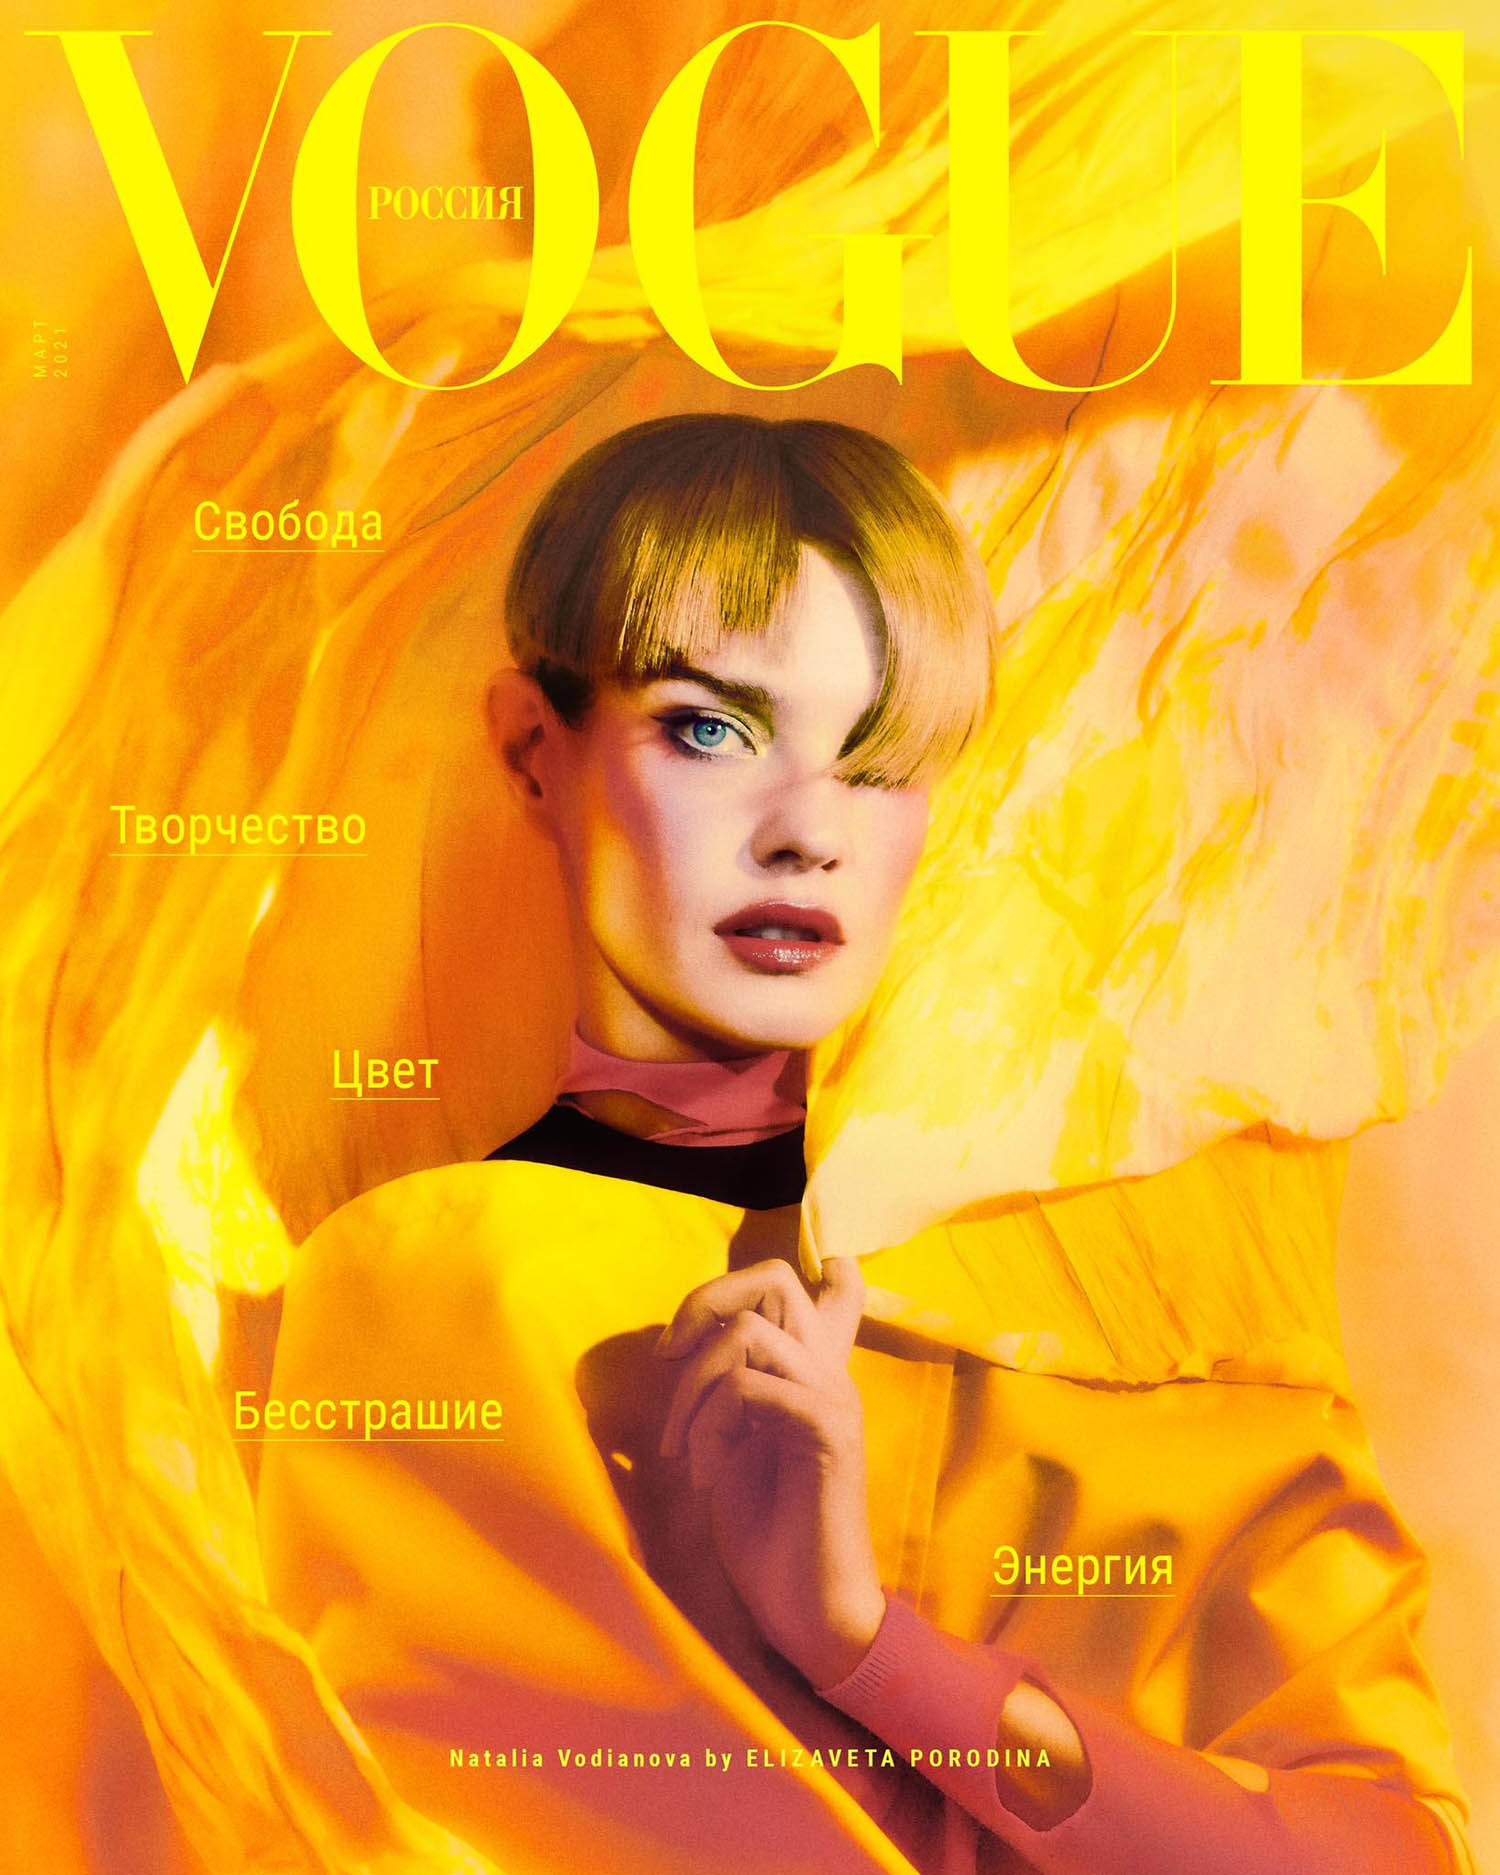 Natalia Vodianova covers Vogue Russia March 2021 by Elizaveta Porodina